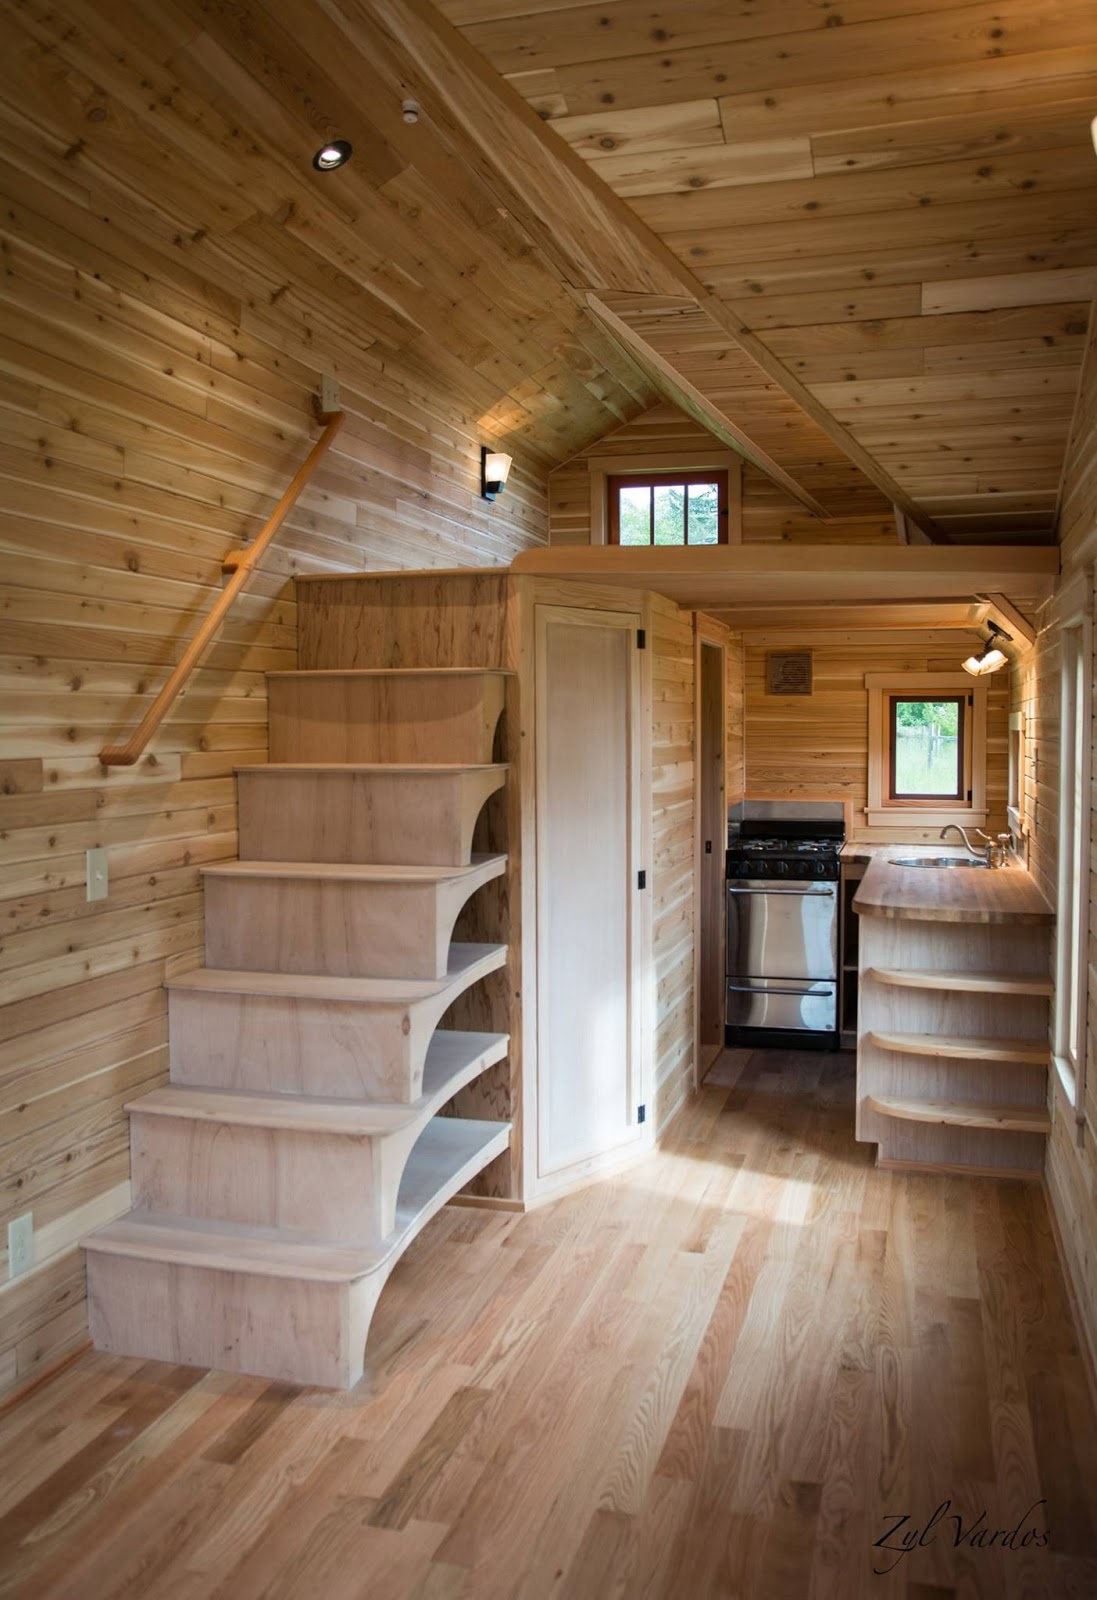 Tiny house town the fuchsia by zyl vardos for Cottage plans with loft and big kitchen